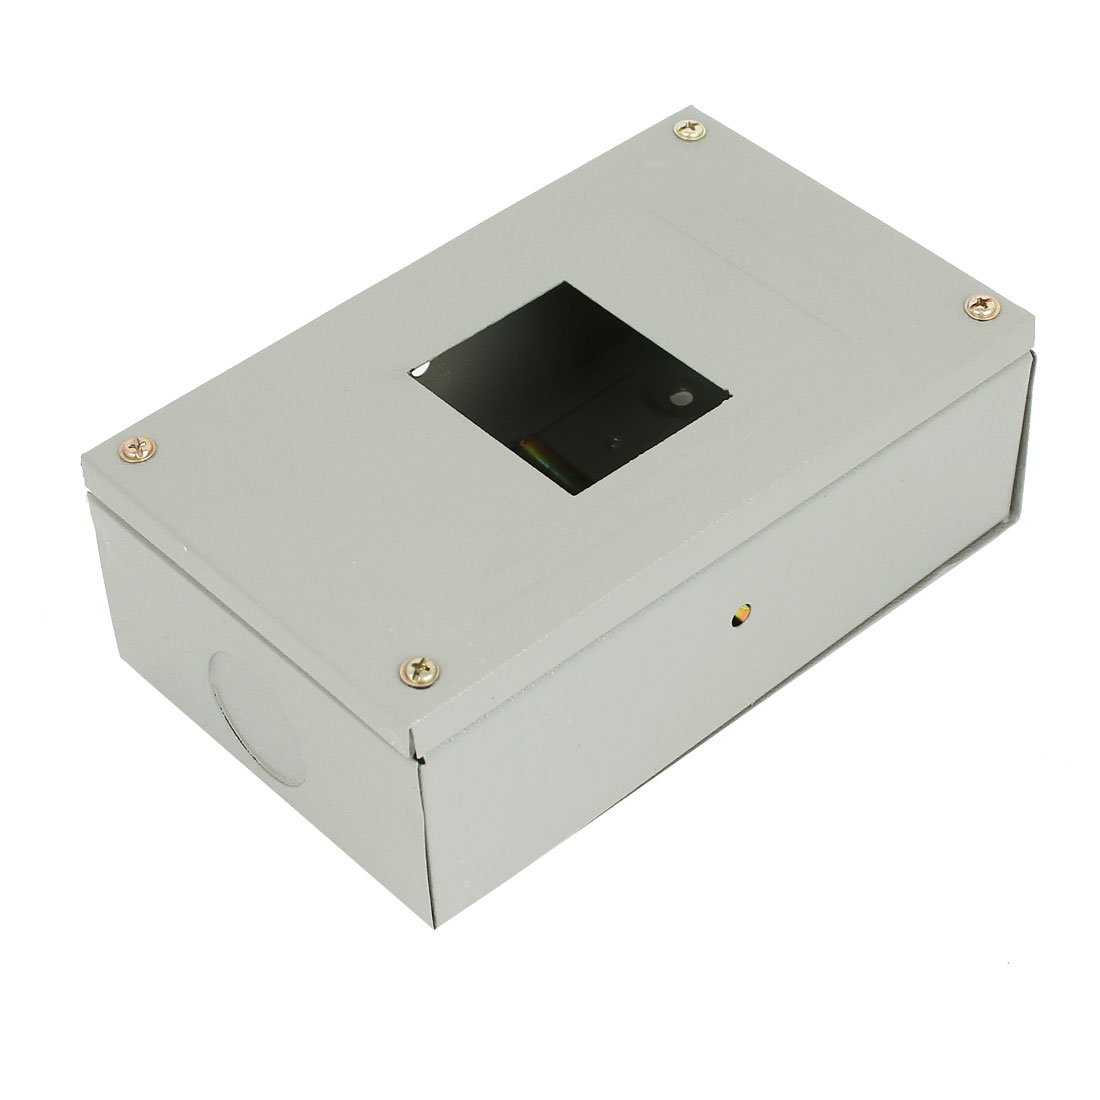 Dustproof IP65 Metal Project Electronic Enclosure Junction Box 182mmx110mmx65mm